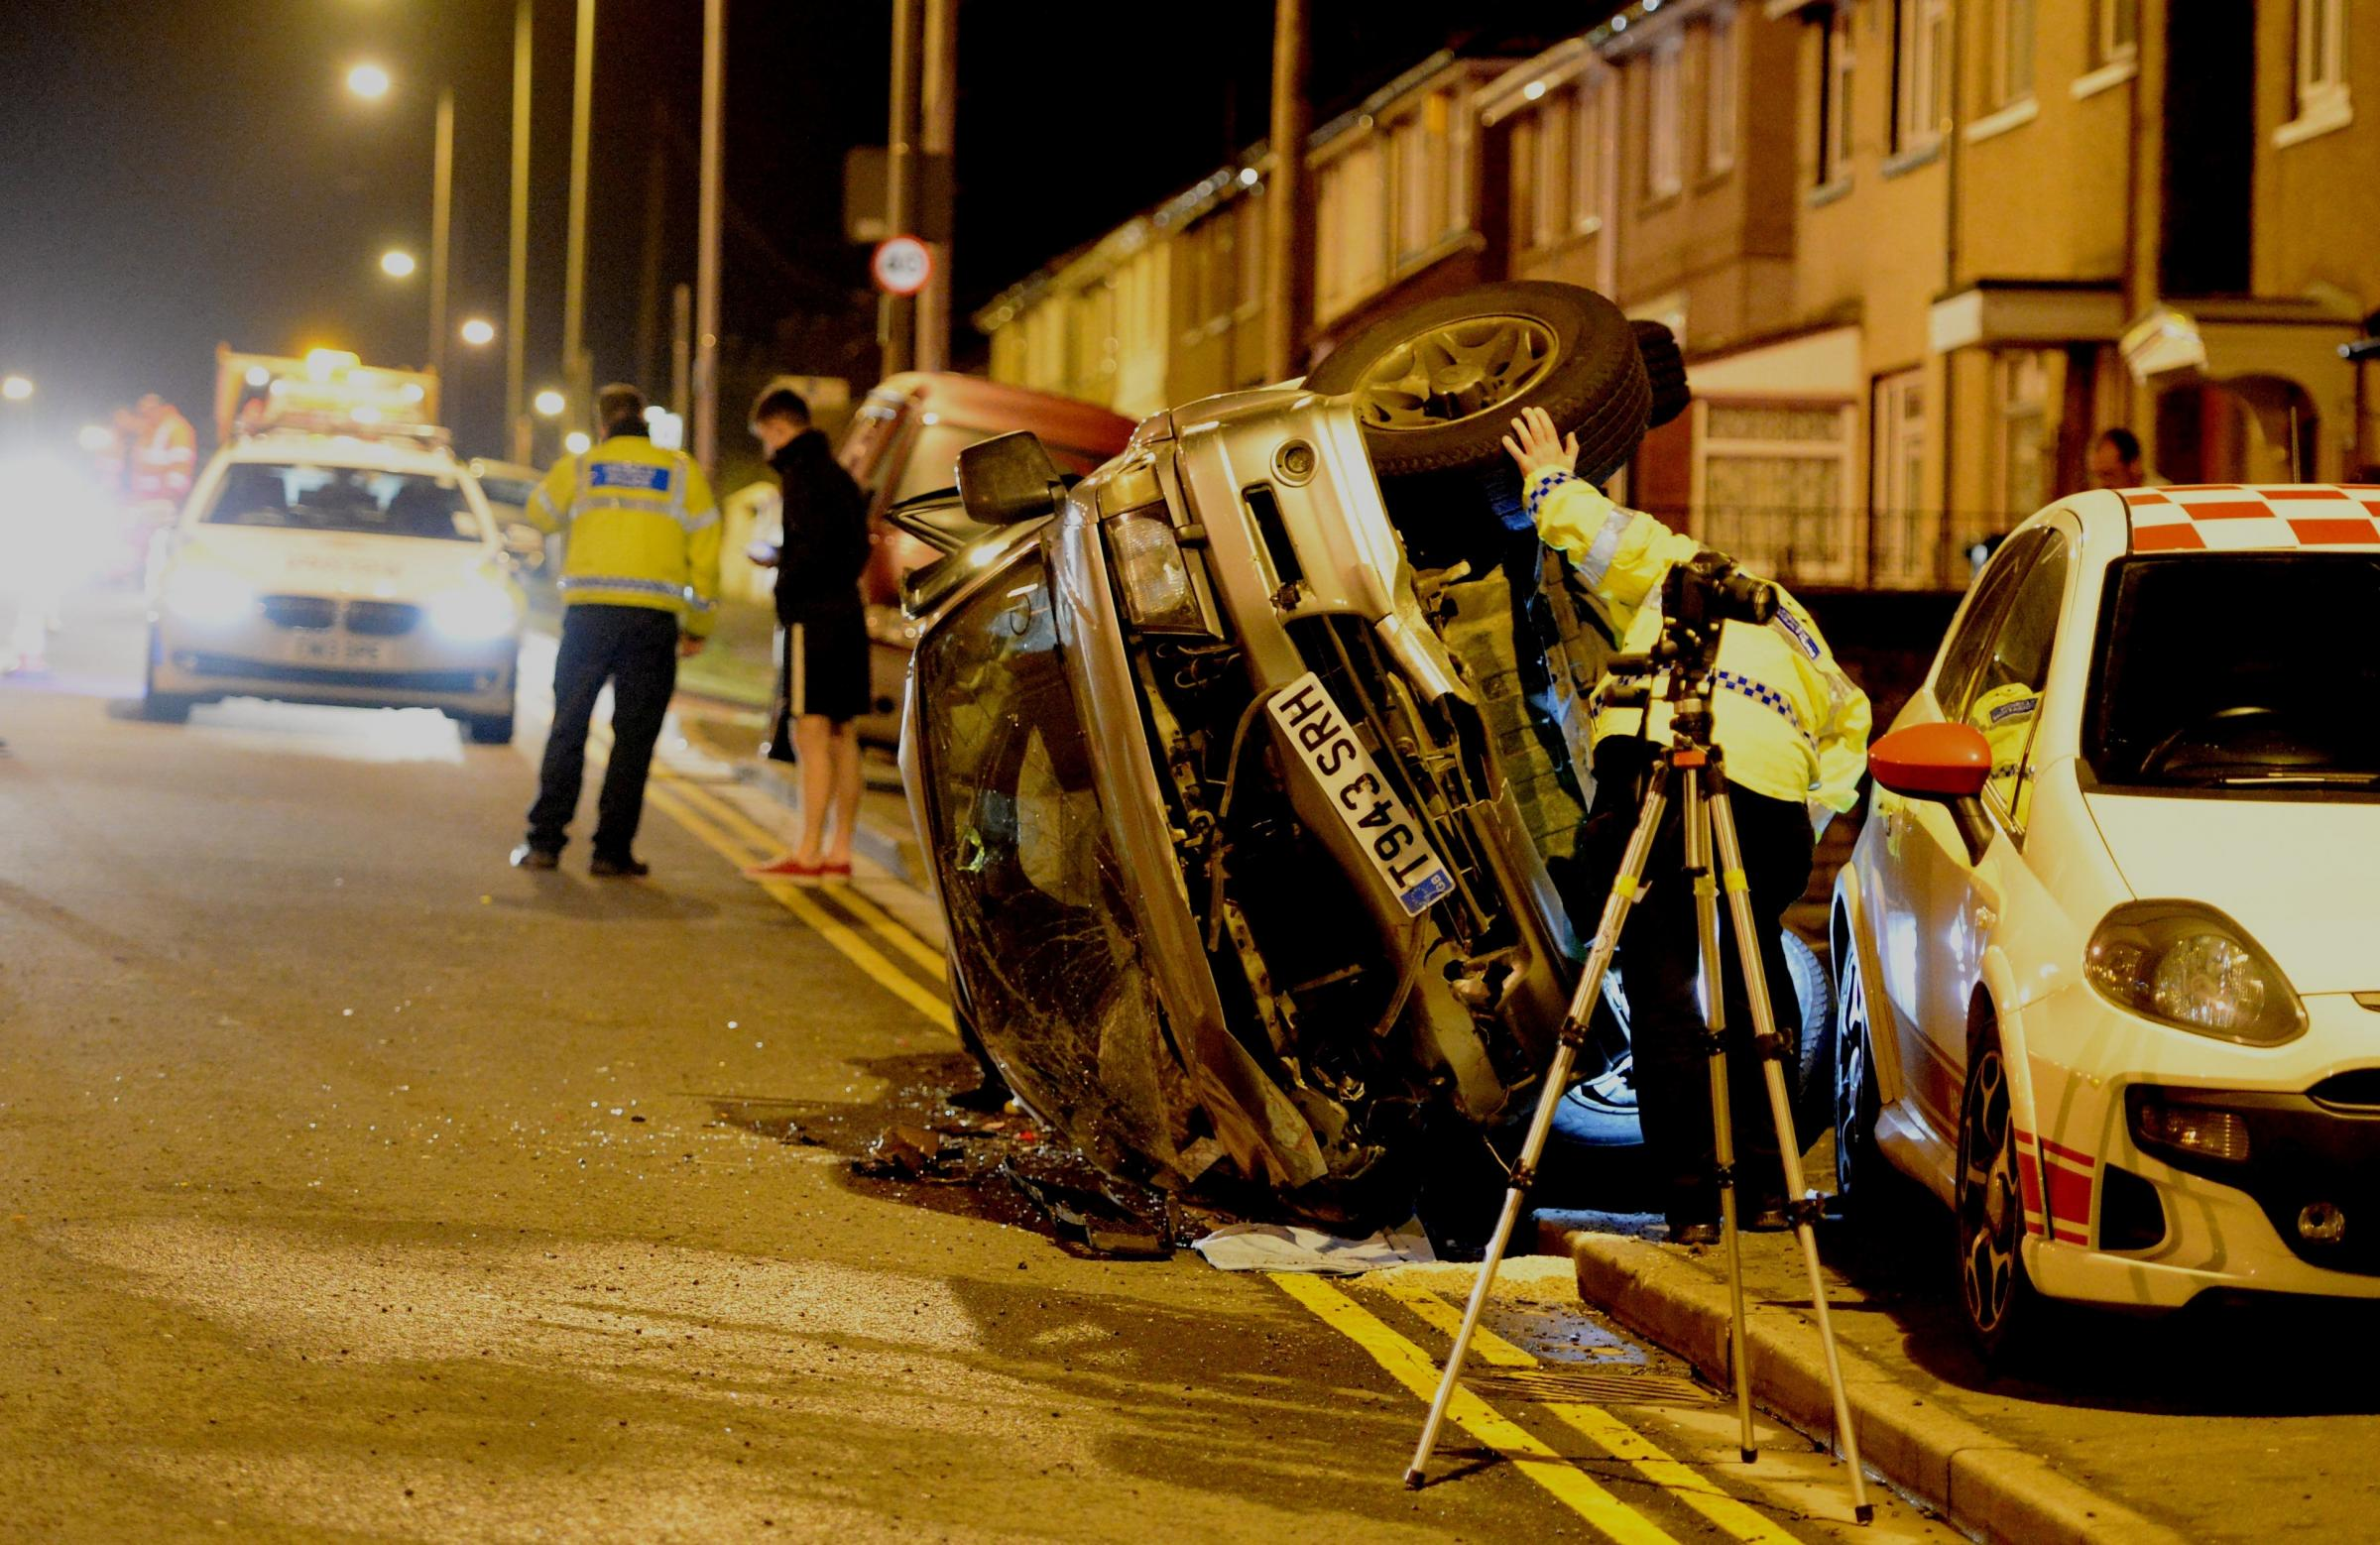 Homeowner's classic car written off in Malpas Road crash